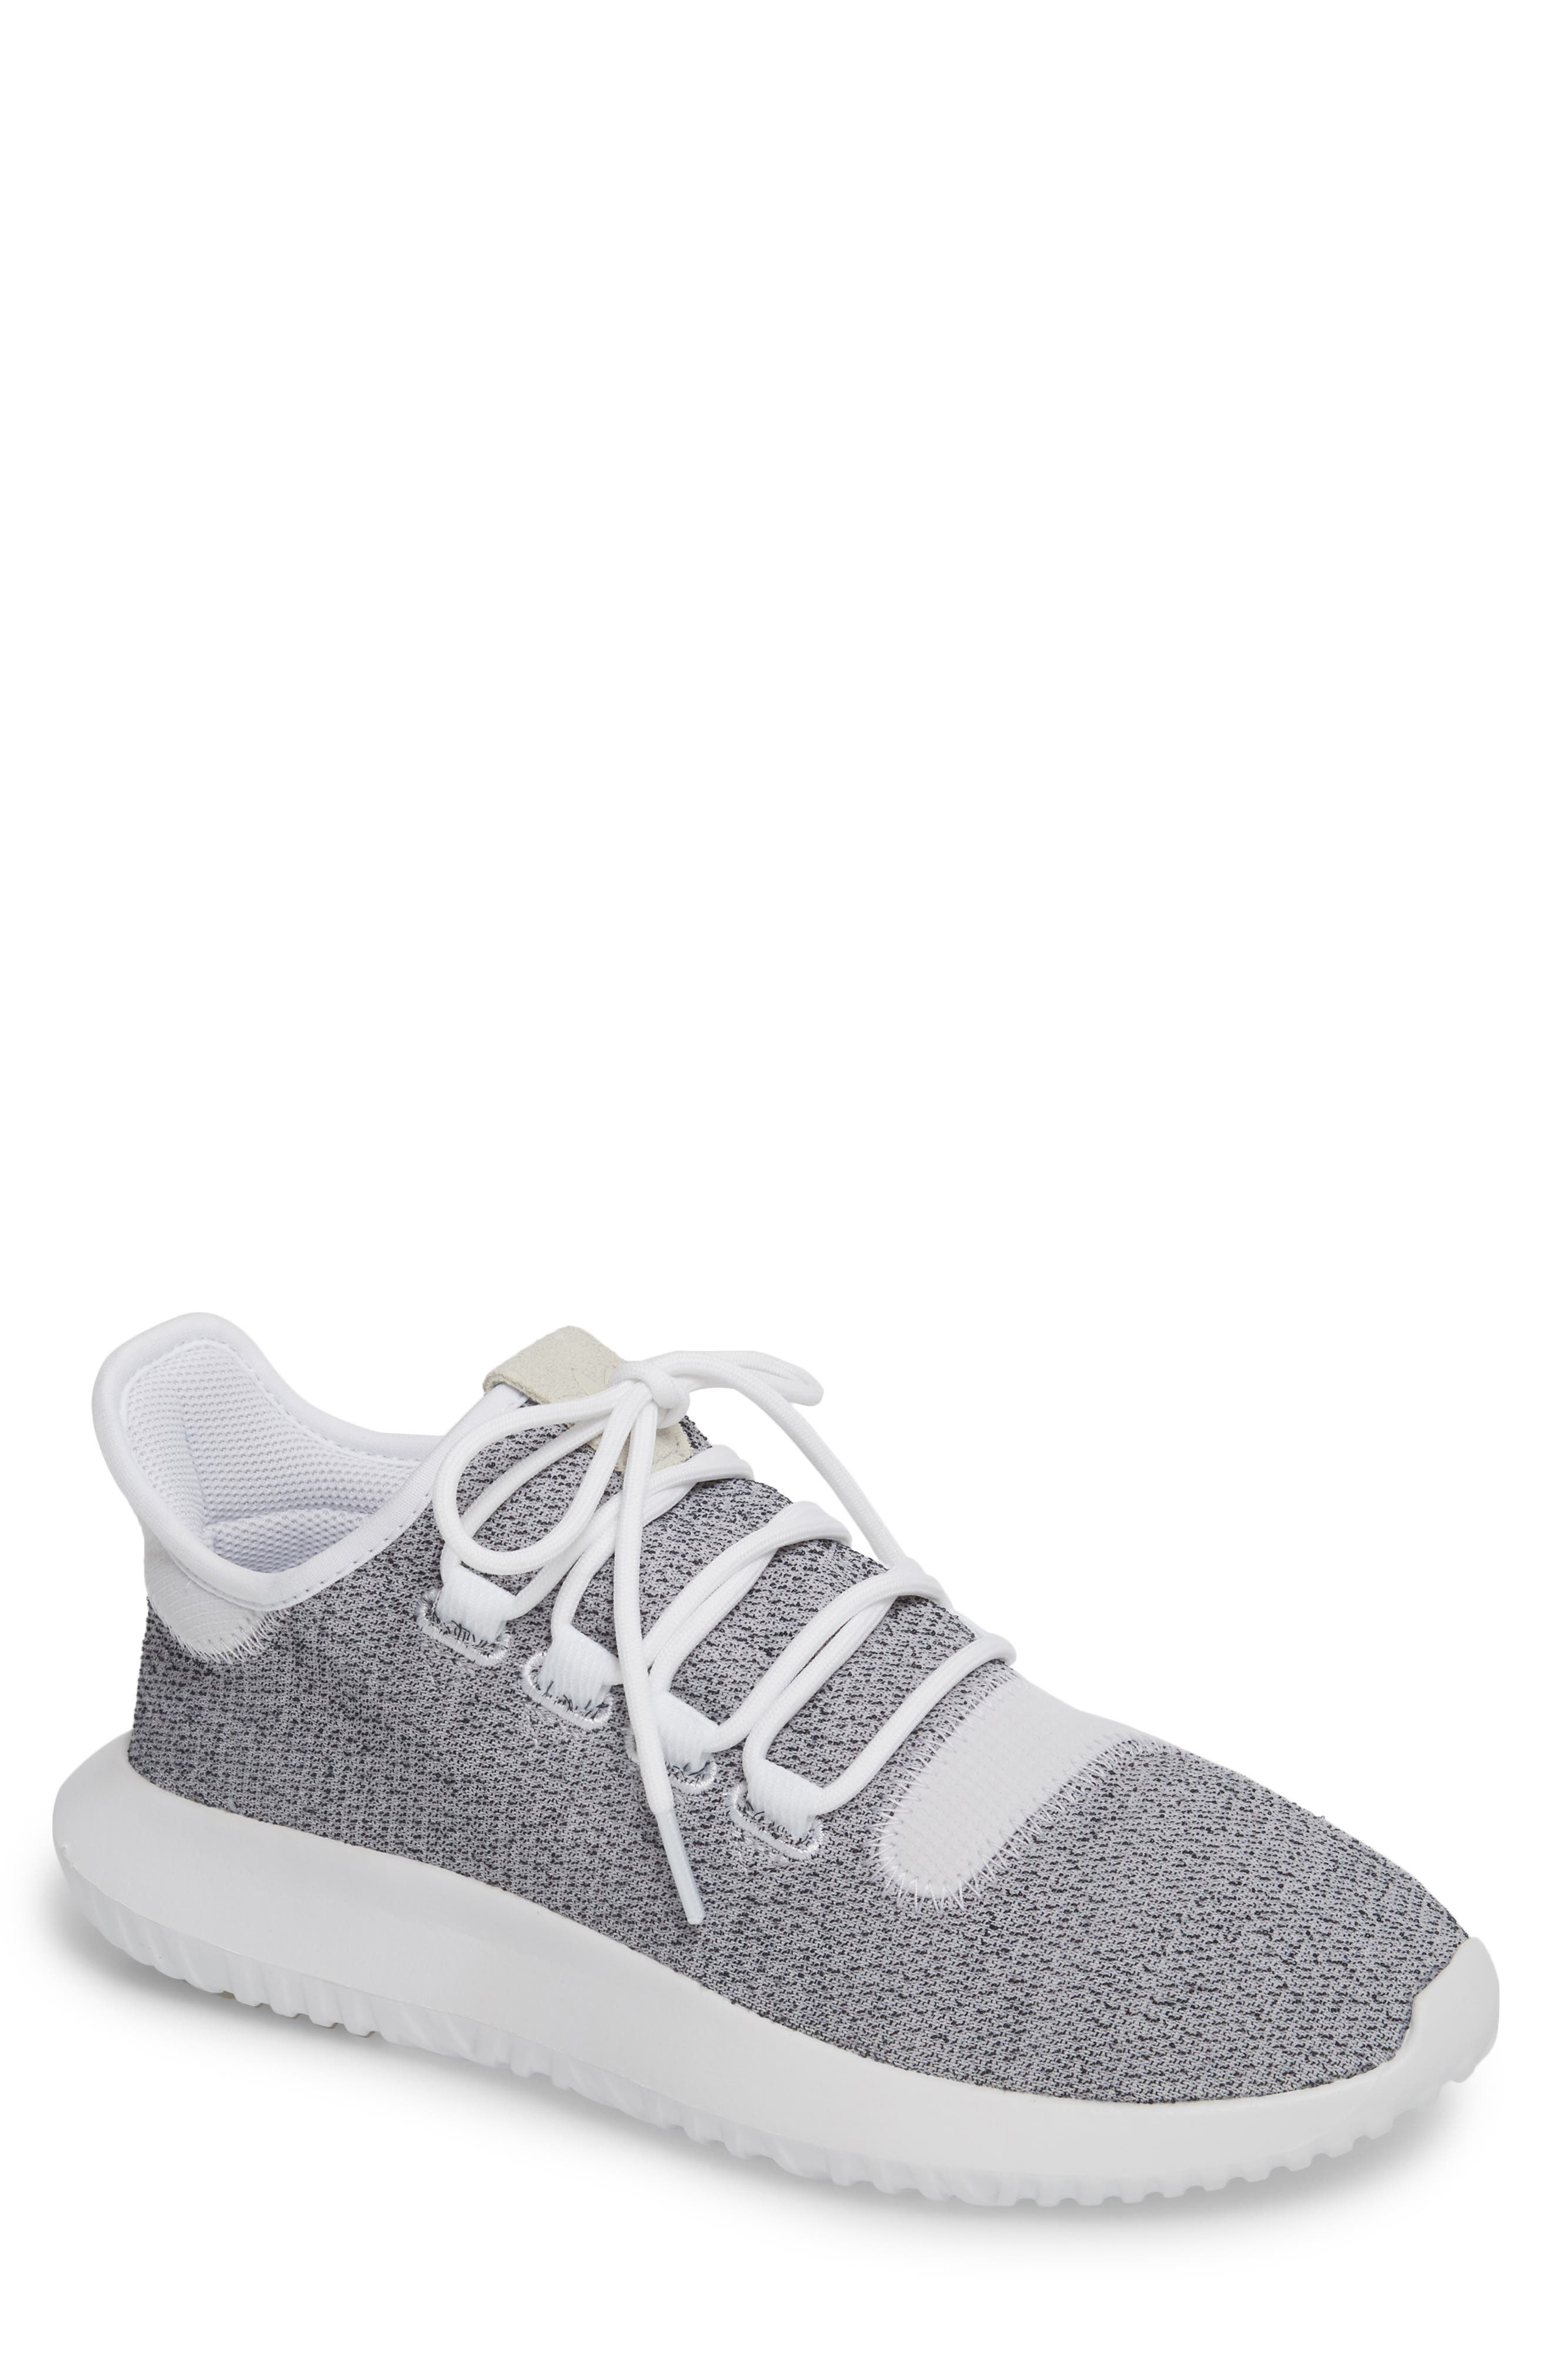 Tubular Shadow Sneaker,                         Main,                         color, 023